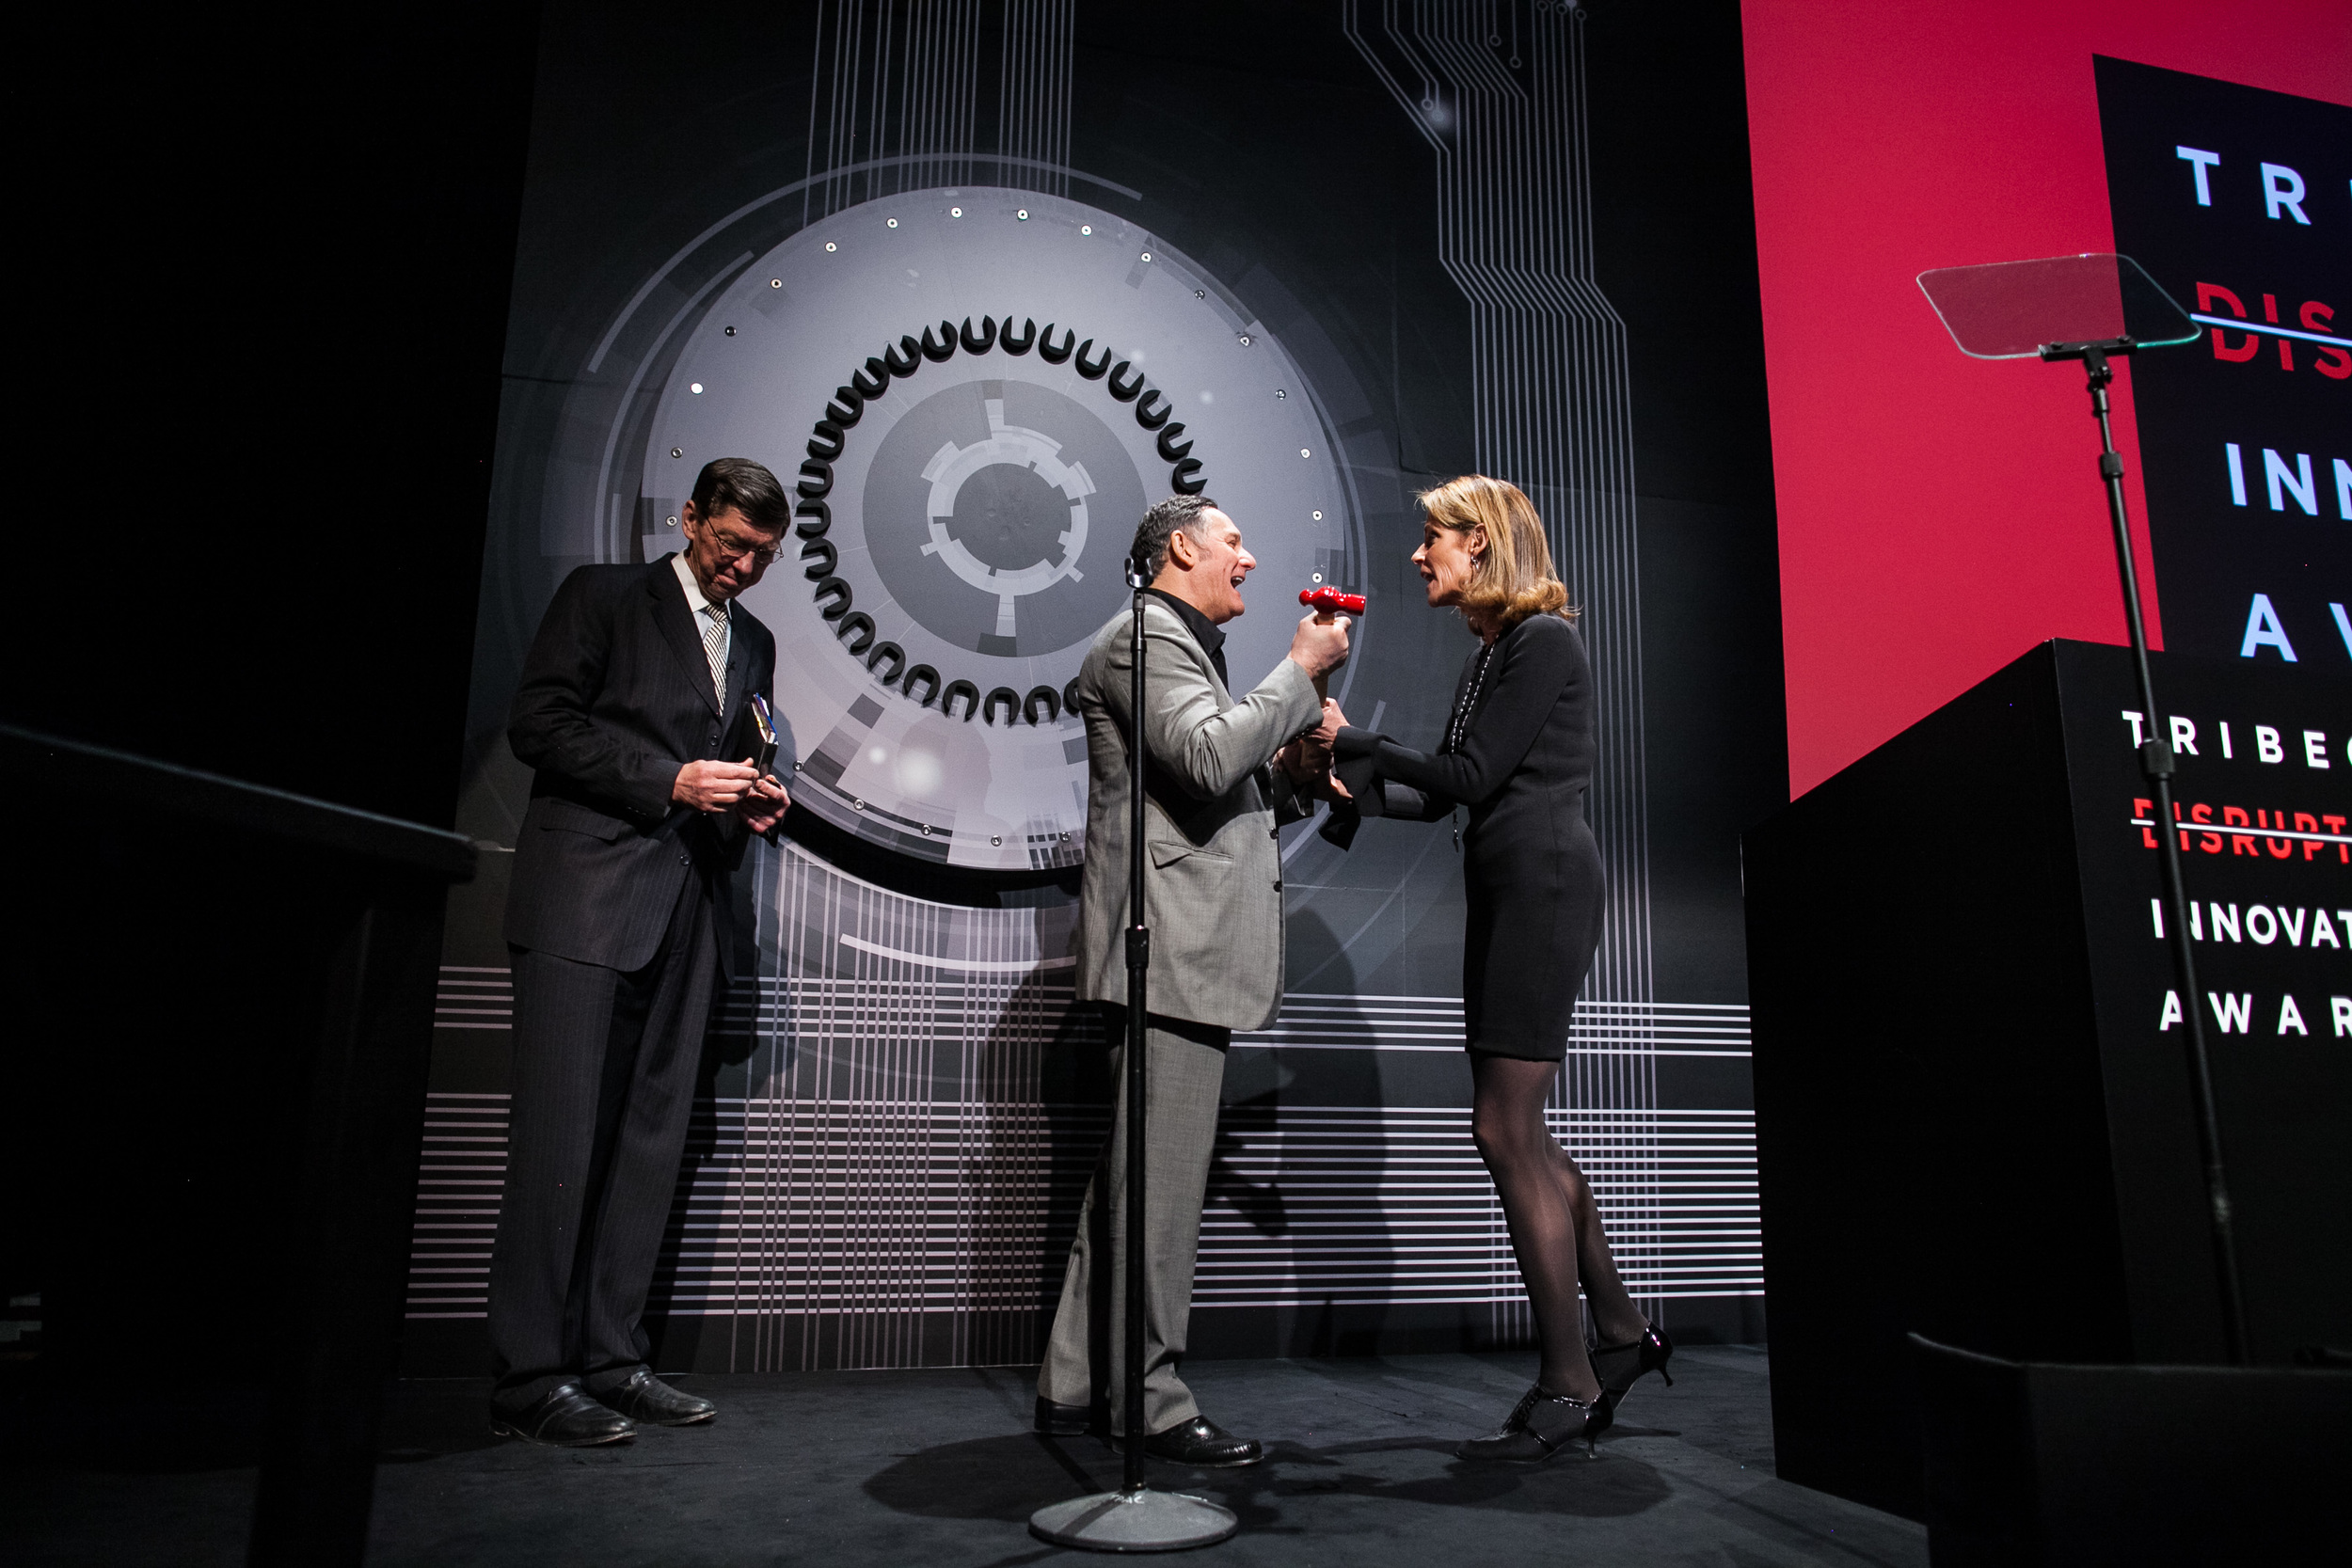 20150424-Tribeca Disruptive Innovation Awards-1427.jpg